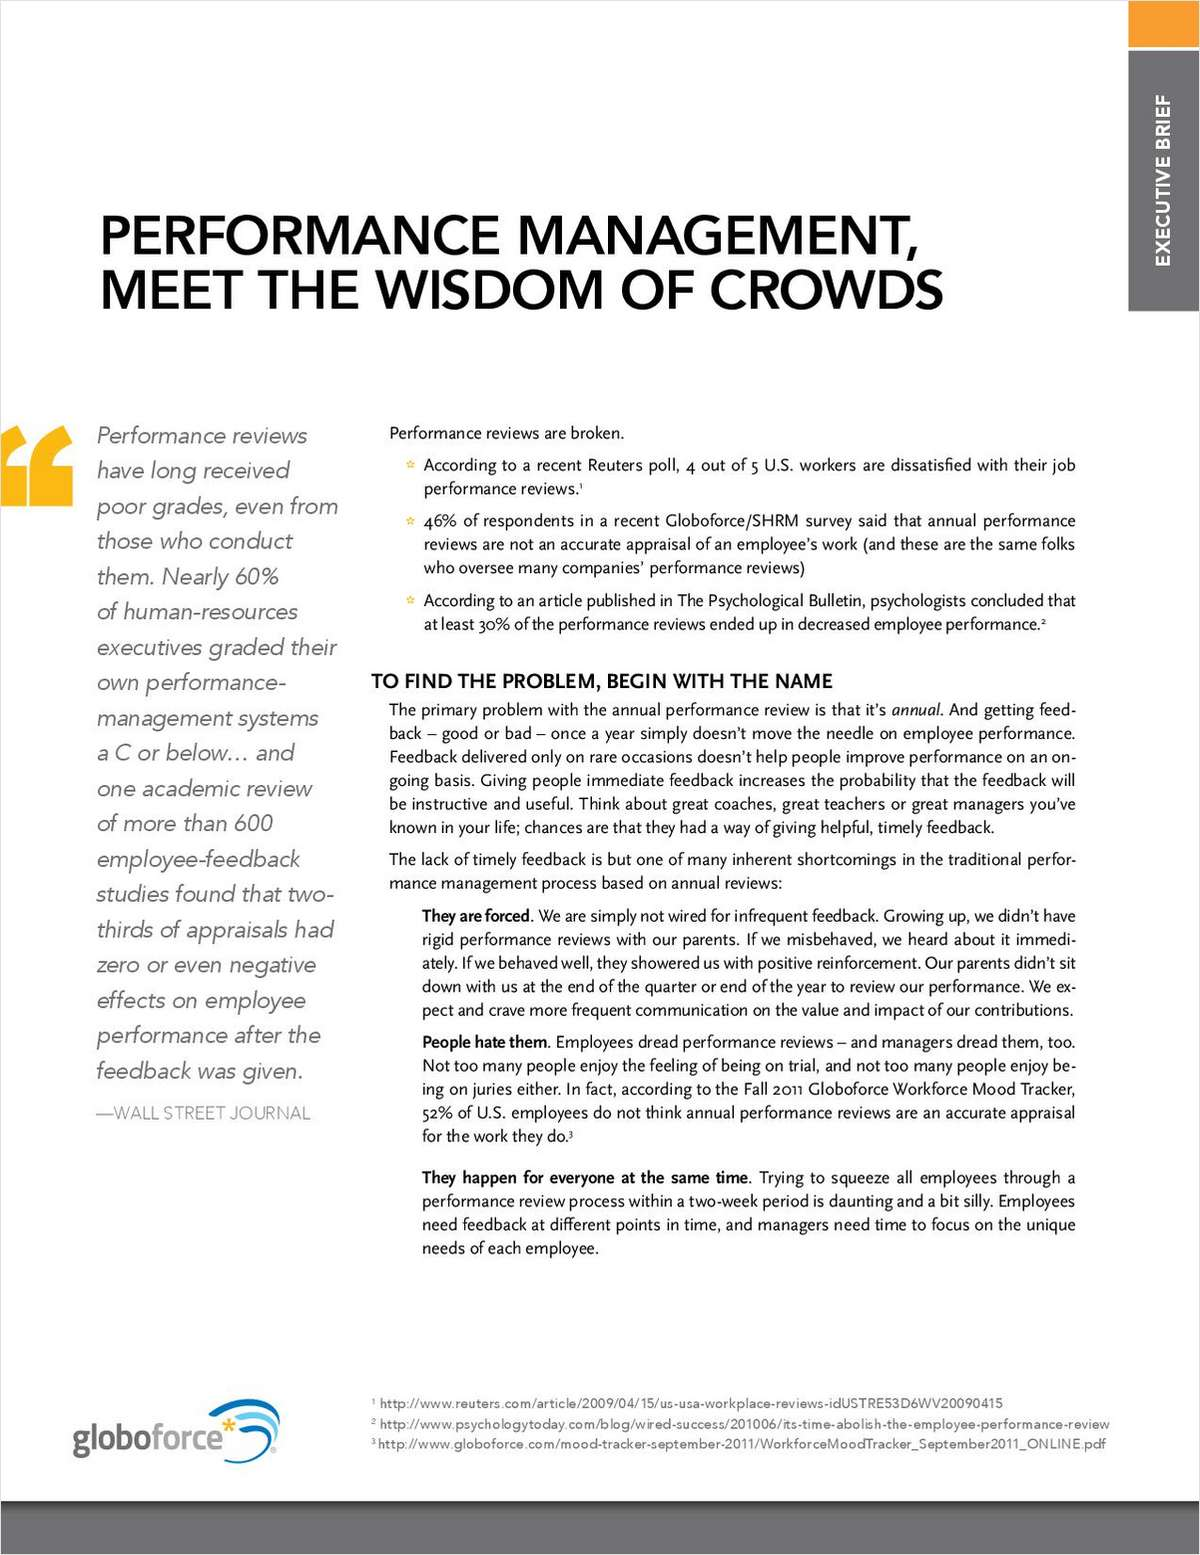 Performance Management, Meet the Wisdom of Crowds